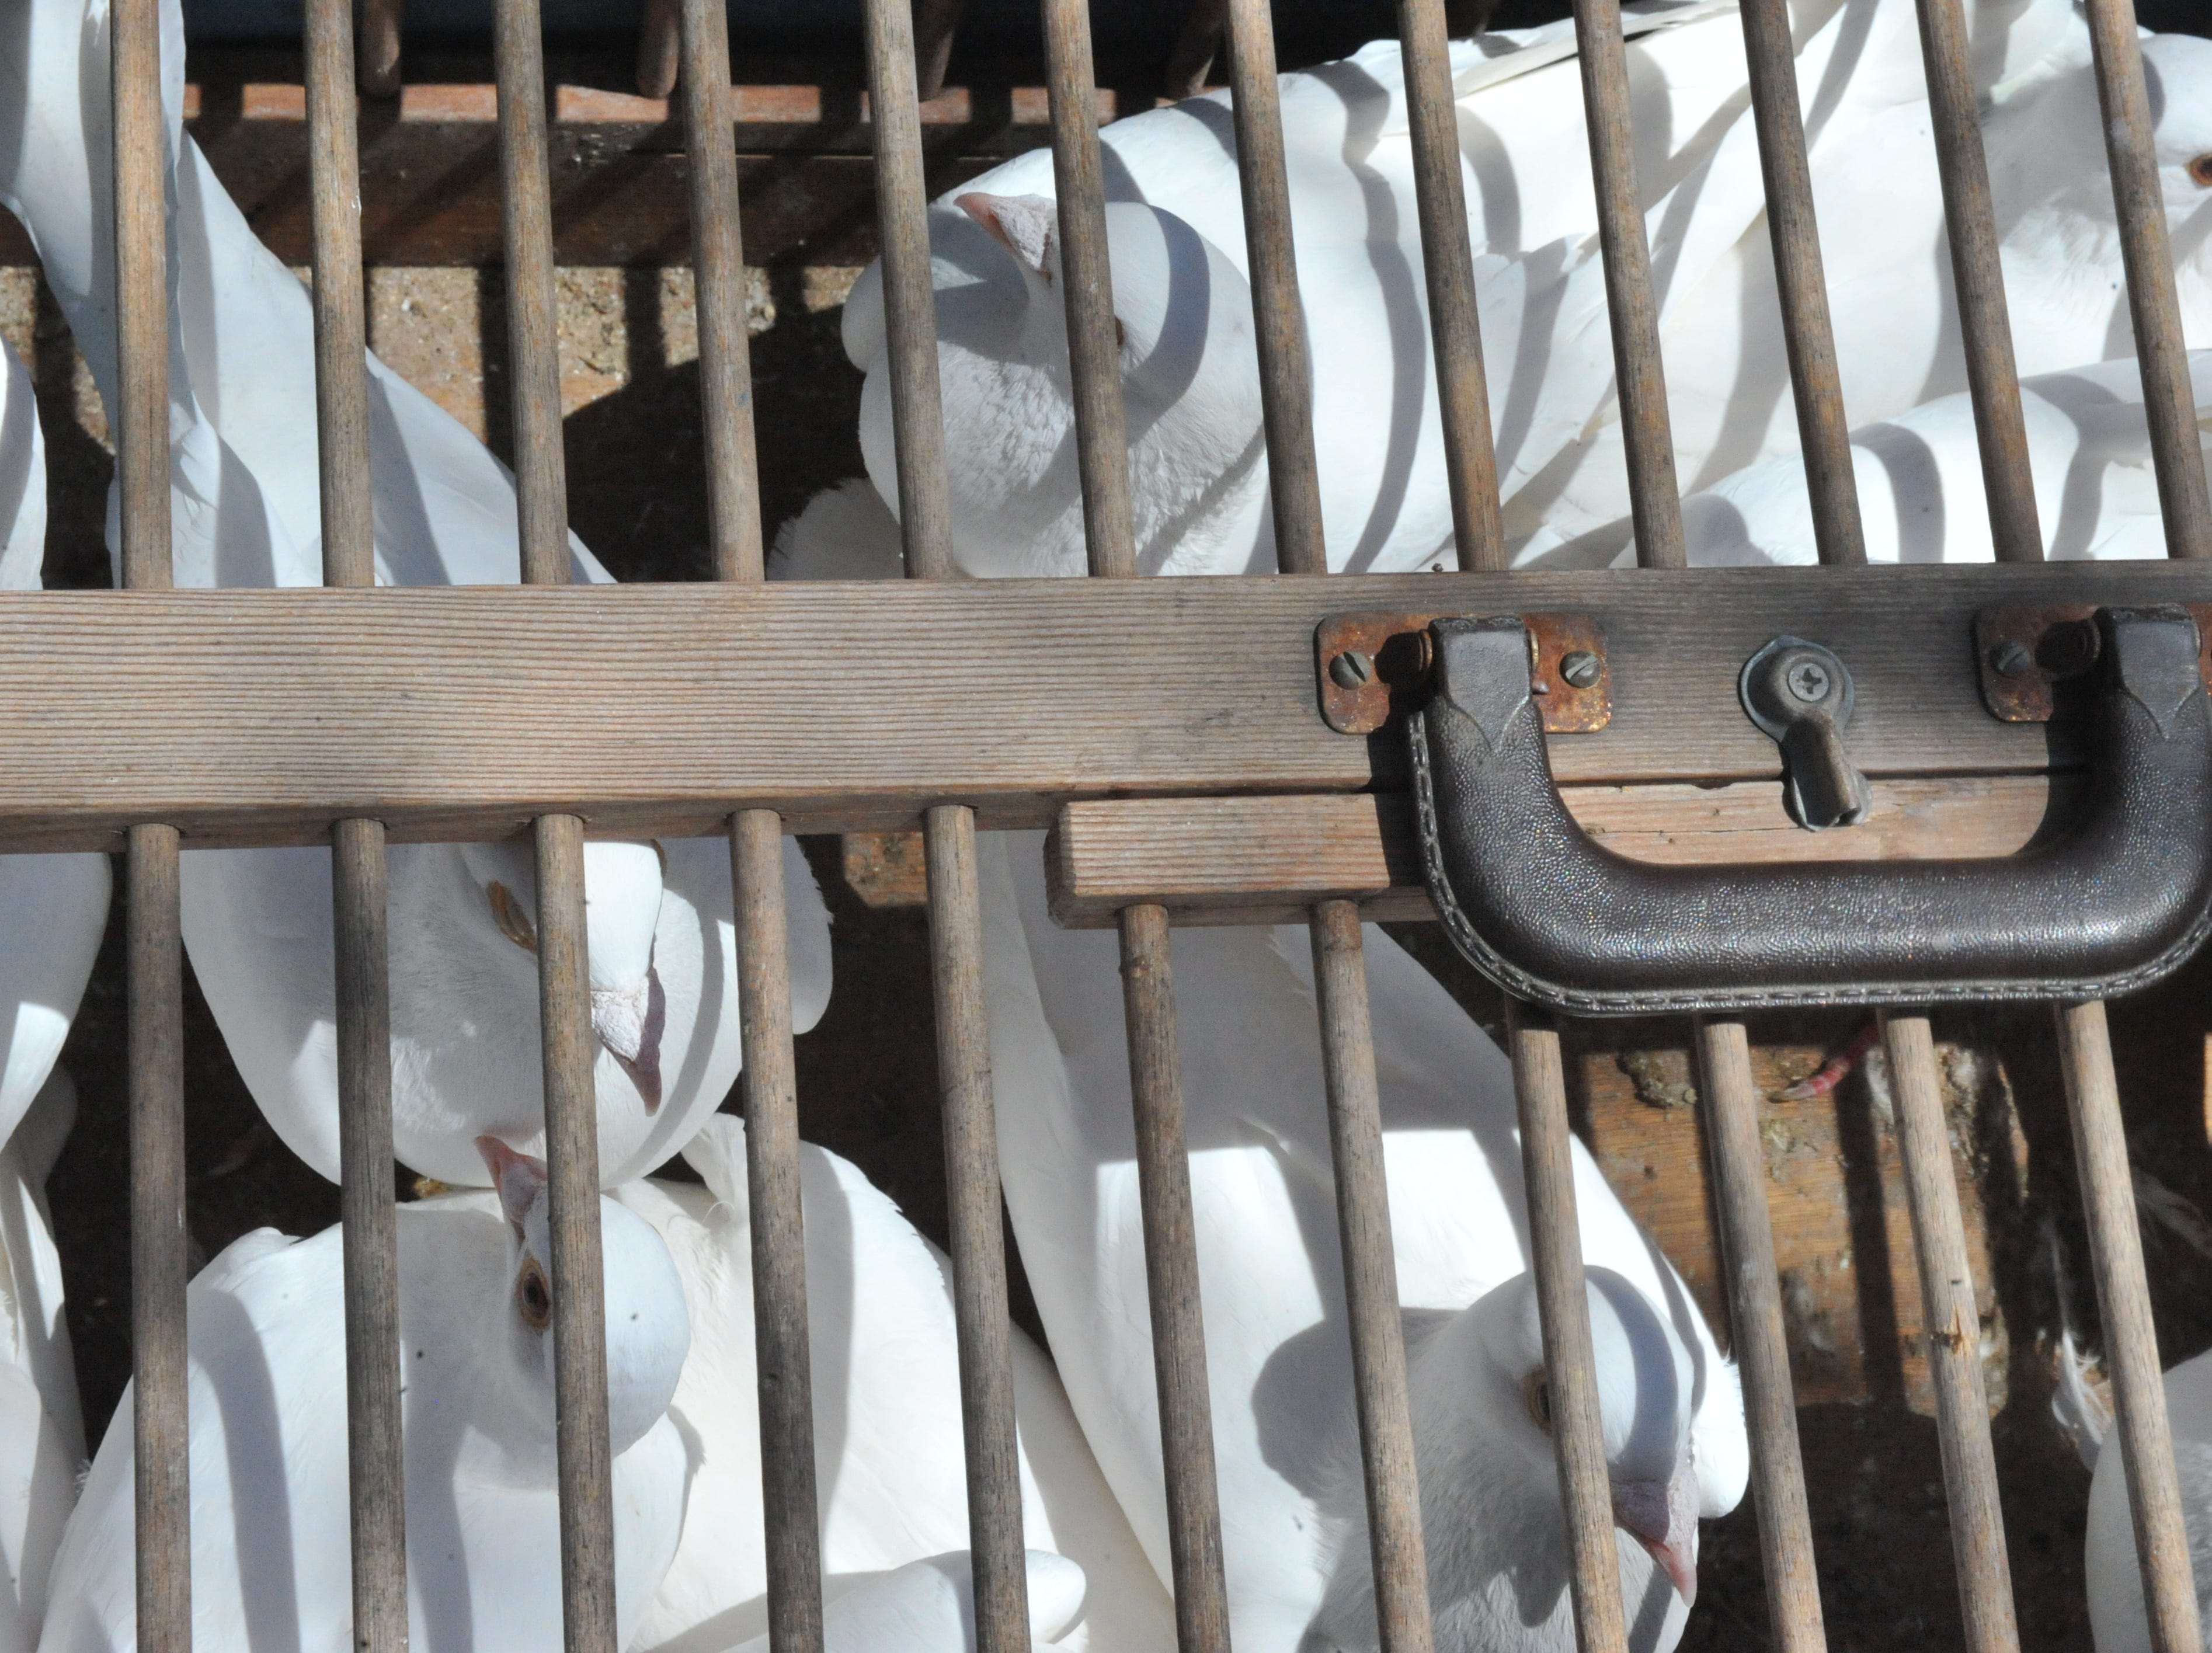 Doves wait patiently in cages for the annual dove release, done in honor of those lost to crime and violence. April 12, 2019.